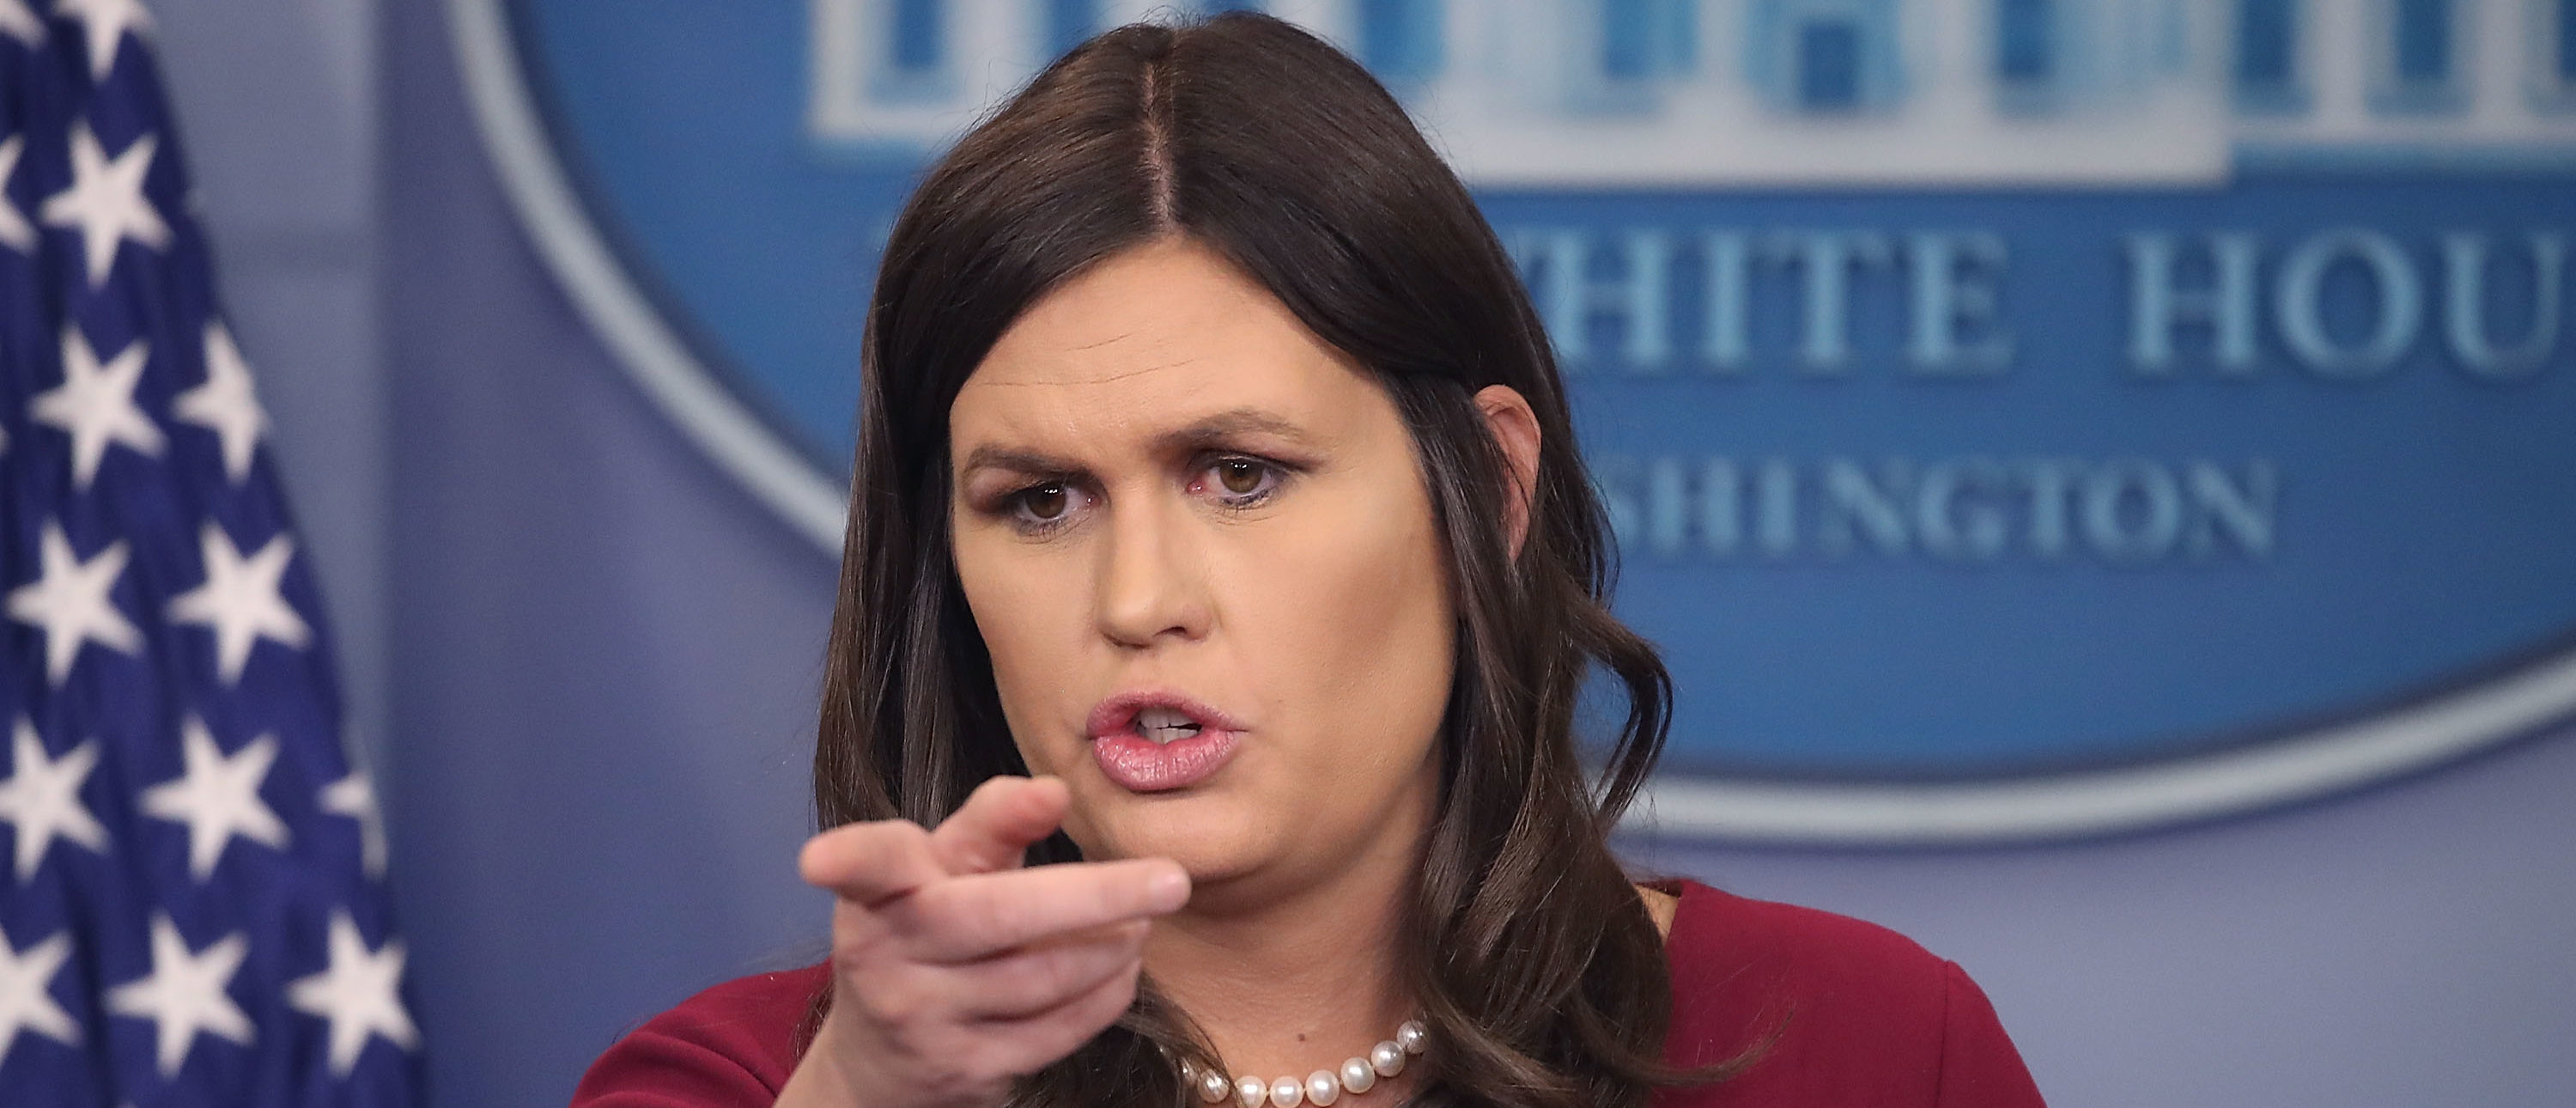 WASHINGTON, DC - APRIL 10: White House Press Secretary Sarah Huckabee Sanders briefs reporters in the White House Briefing Room, on April 10, 2018 in Washington, DC. (Photo by Mark Wilson/Getty Images)